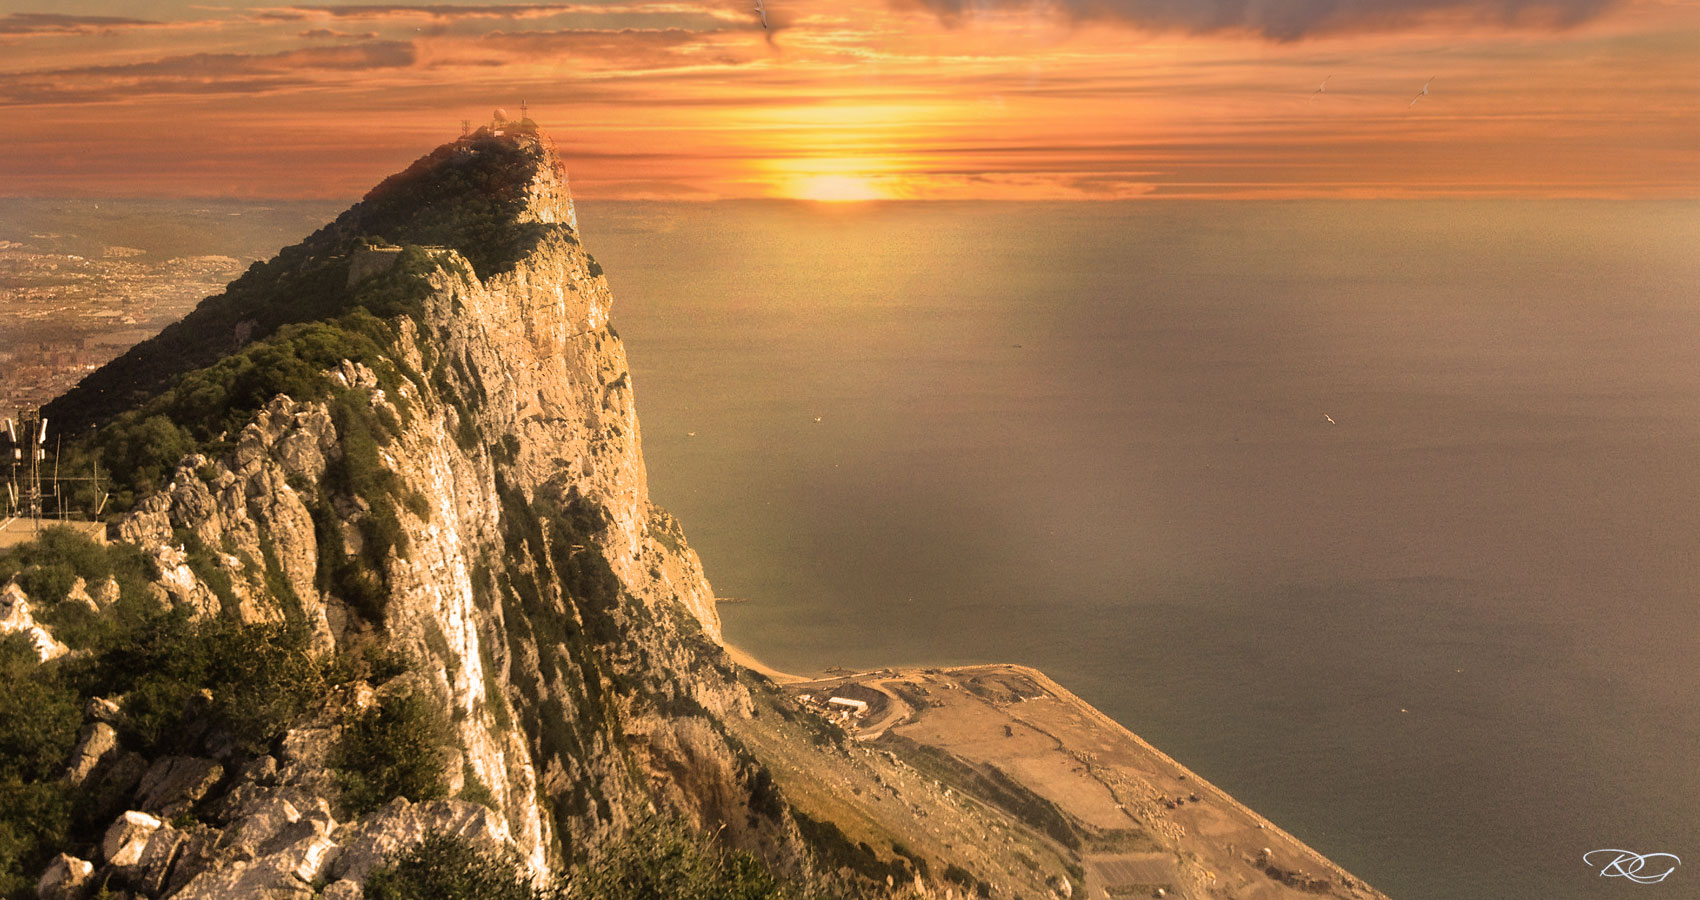 Dream Of Gibraltar by Nara Hodge at Spillwords.com